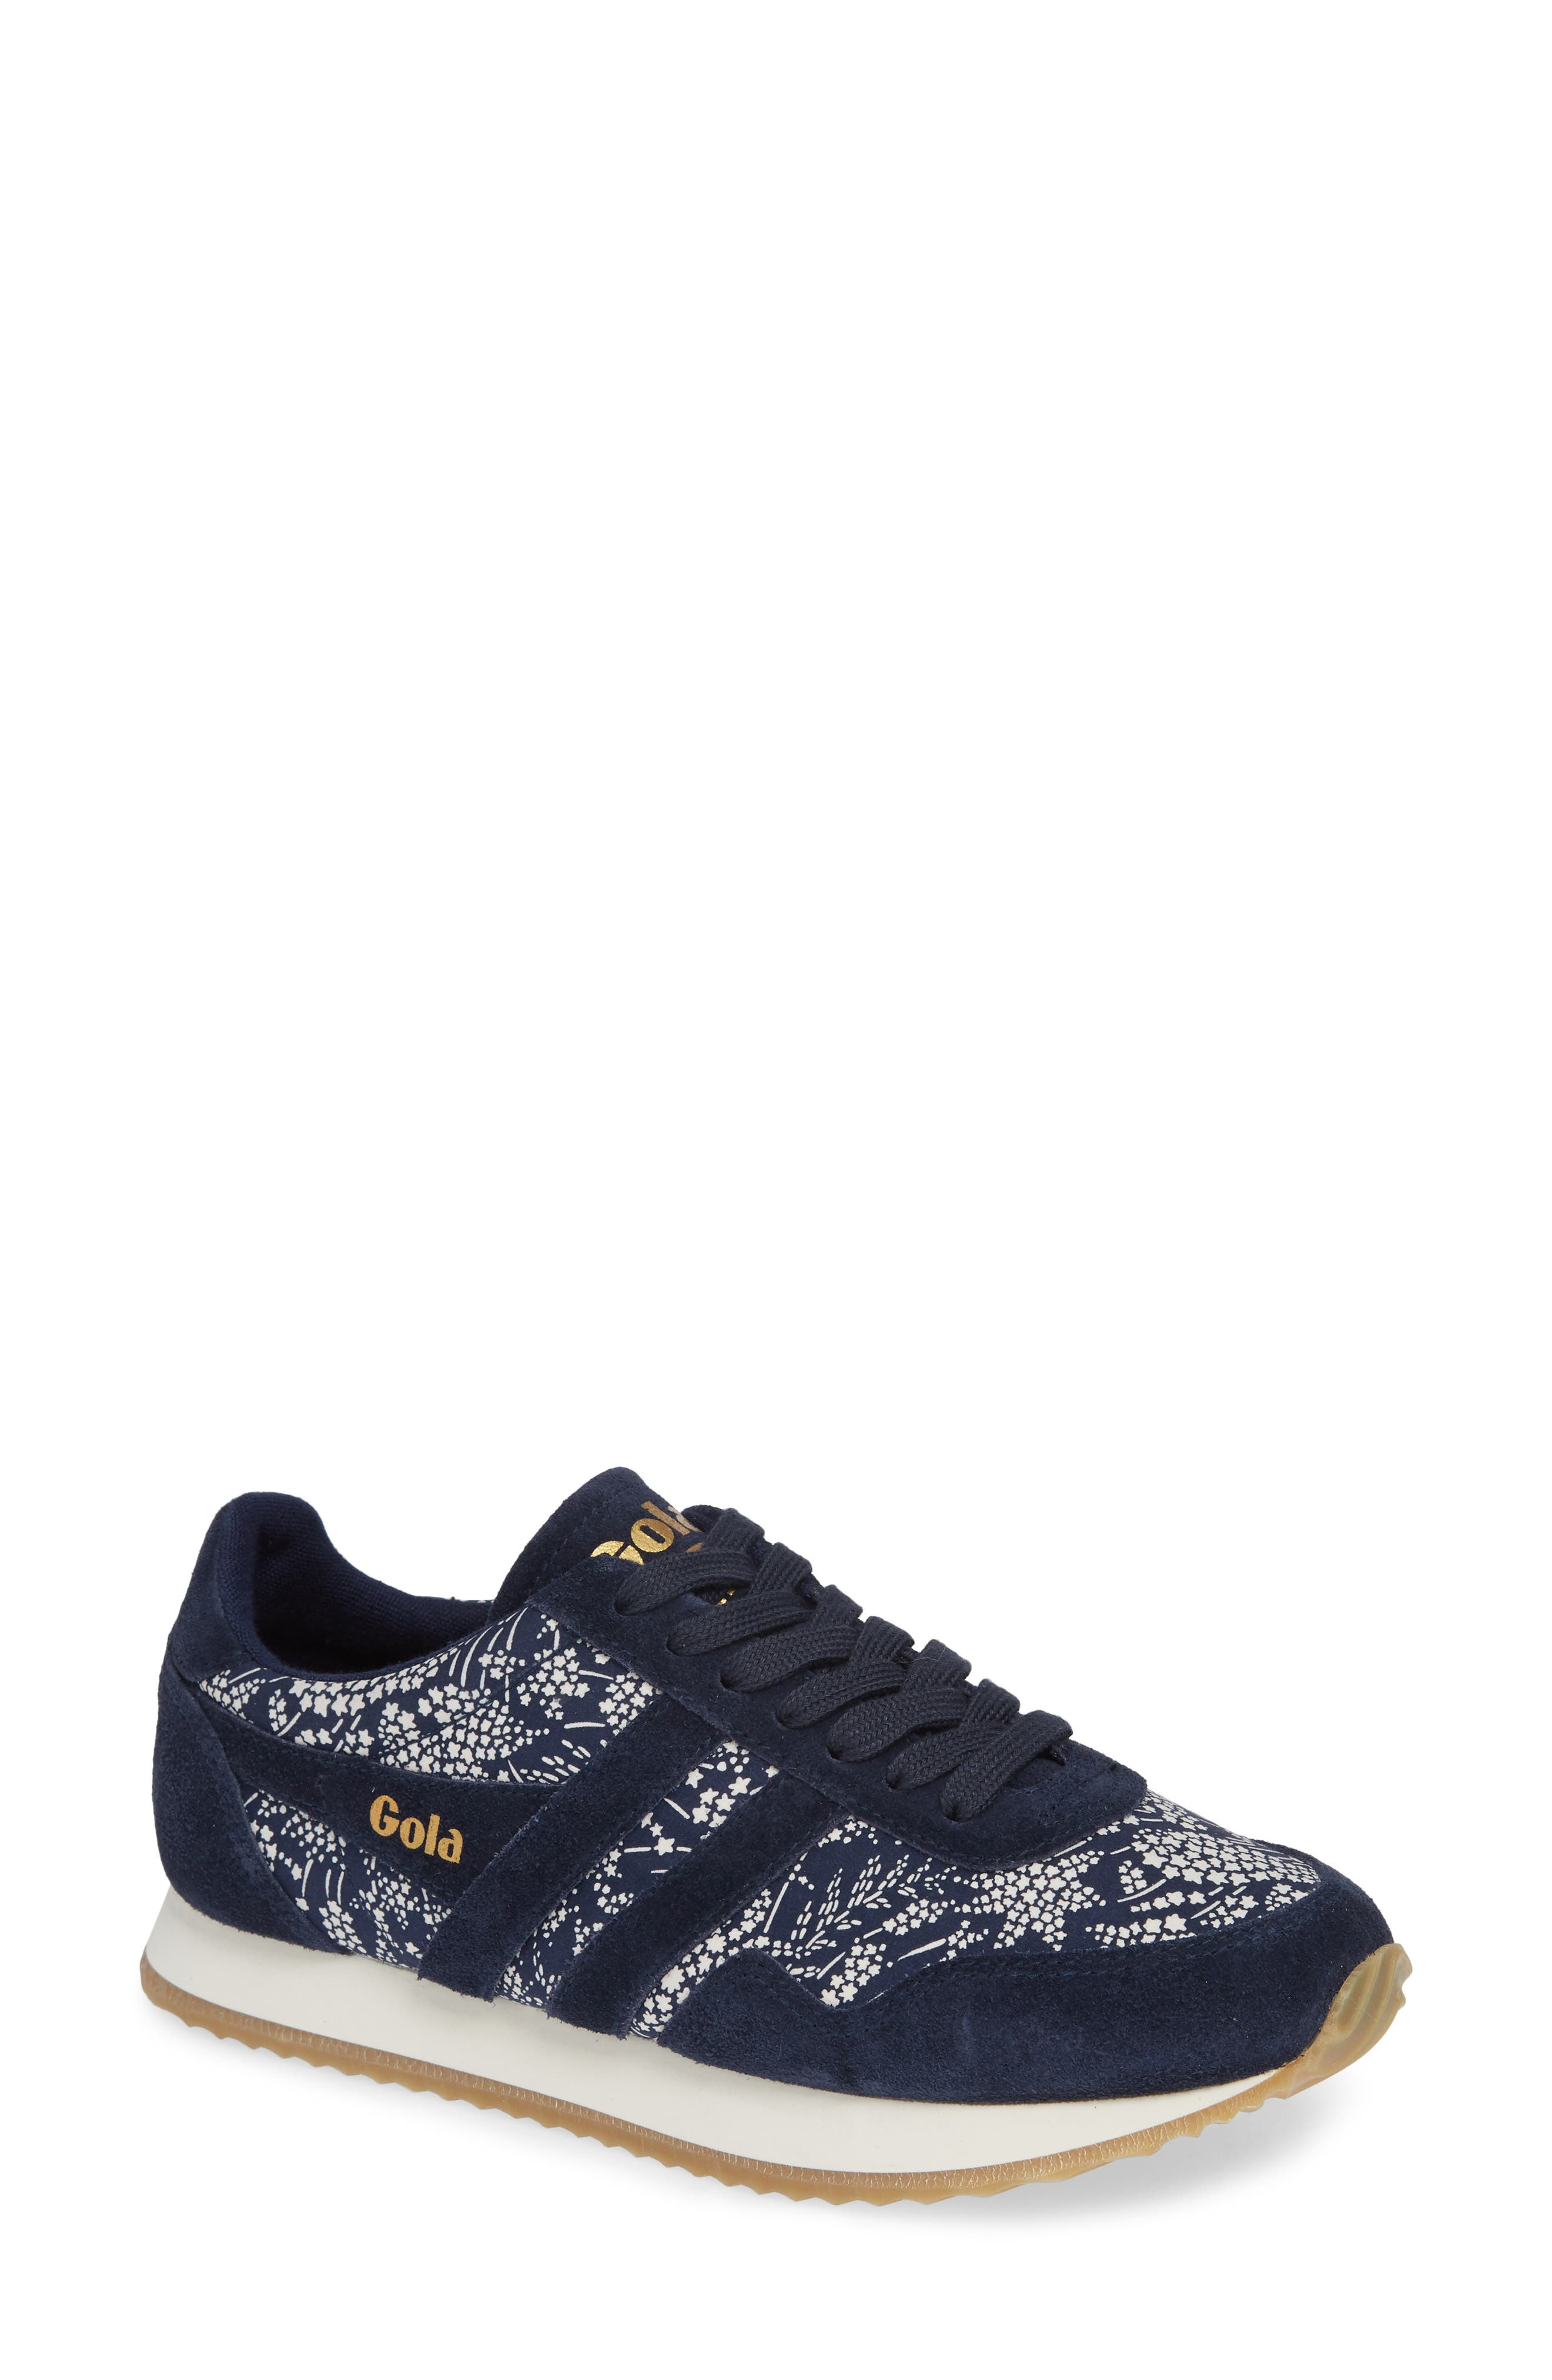 GOLA X Liberty Fabrics Collection Bullet Sneaker in Navy/ Off White